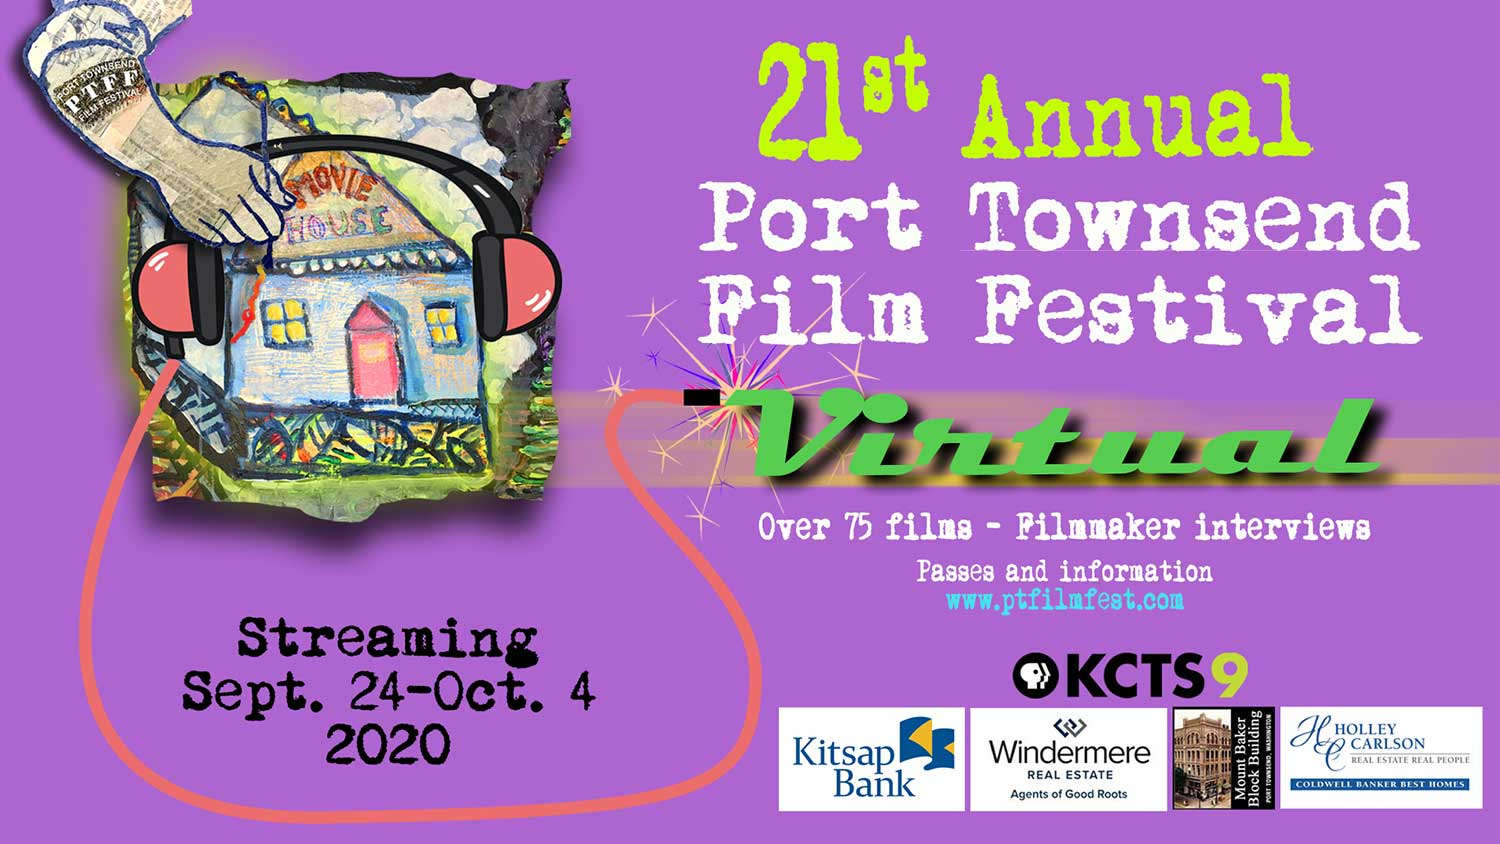 The 21st Annual Port Townsend Film Festival begins September 24th! Enter to win passes!